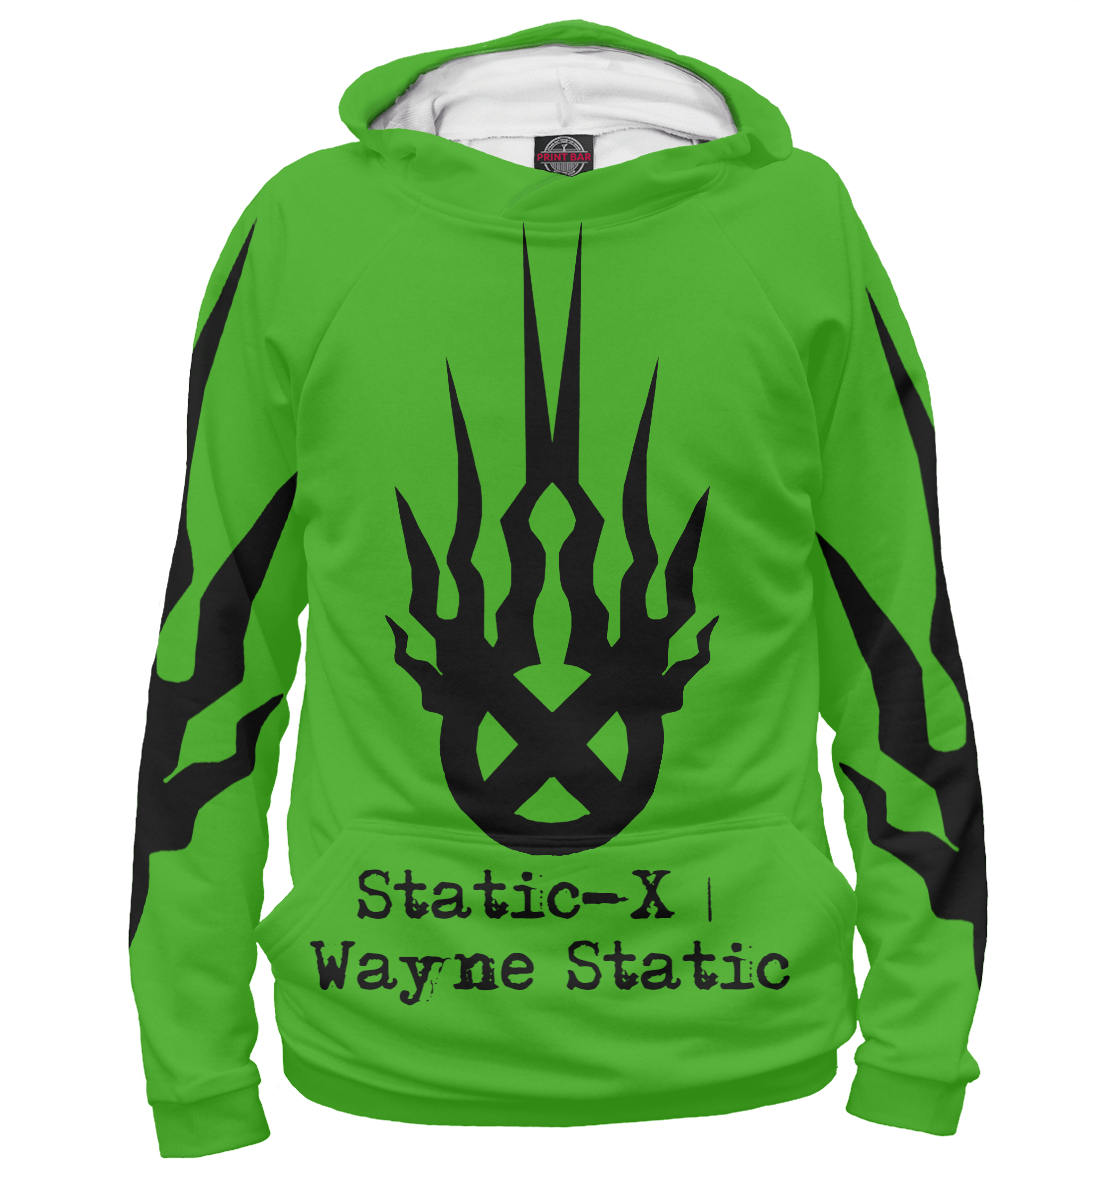 Static-X | Wayne Static Green